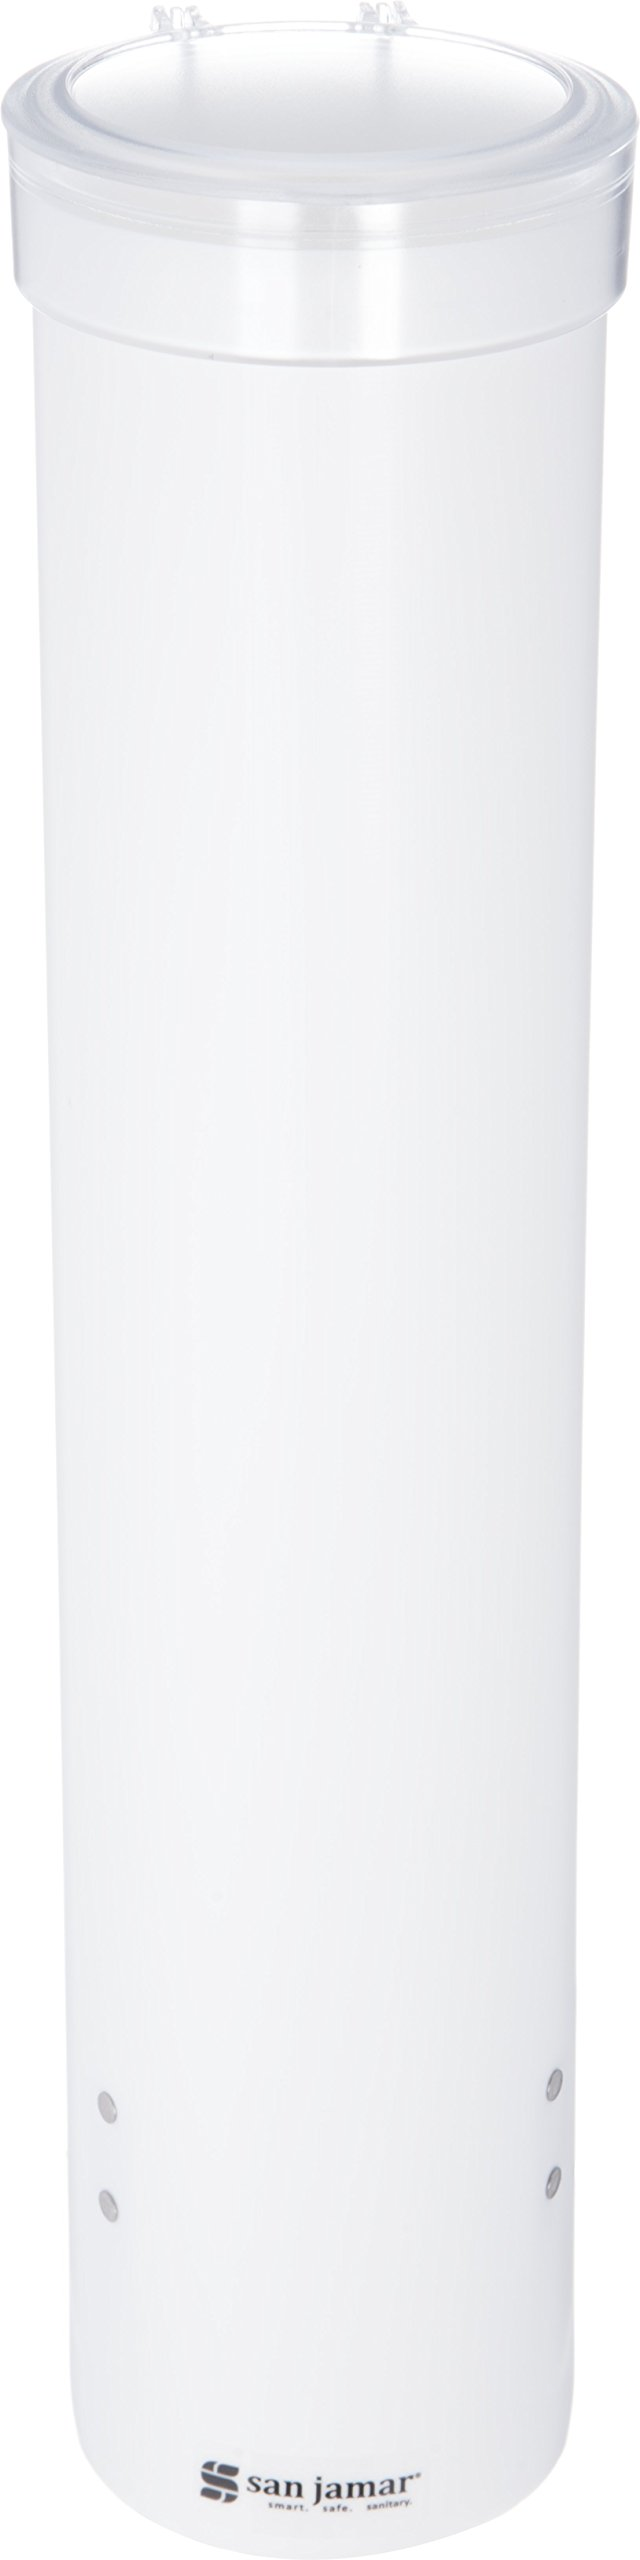 """San Jamar C3165WH Medium Pull Type Water Cup Dispenser, Fits 4 to 10 oz Cone and Flat Bottom Cups, 16"""" Tube Length, White"""